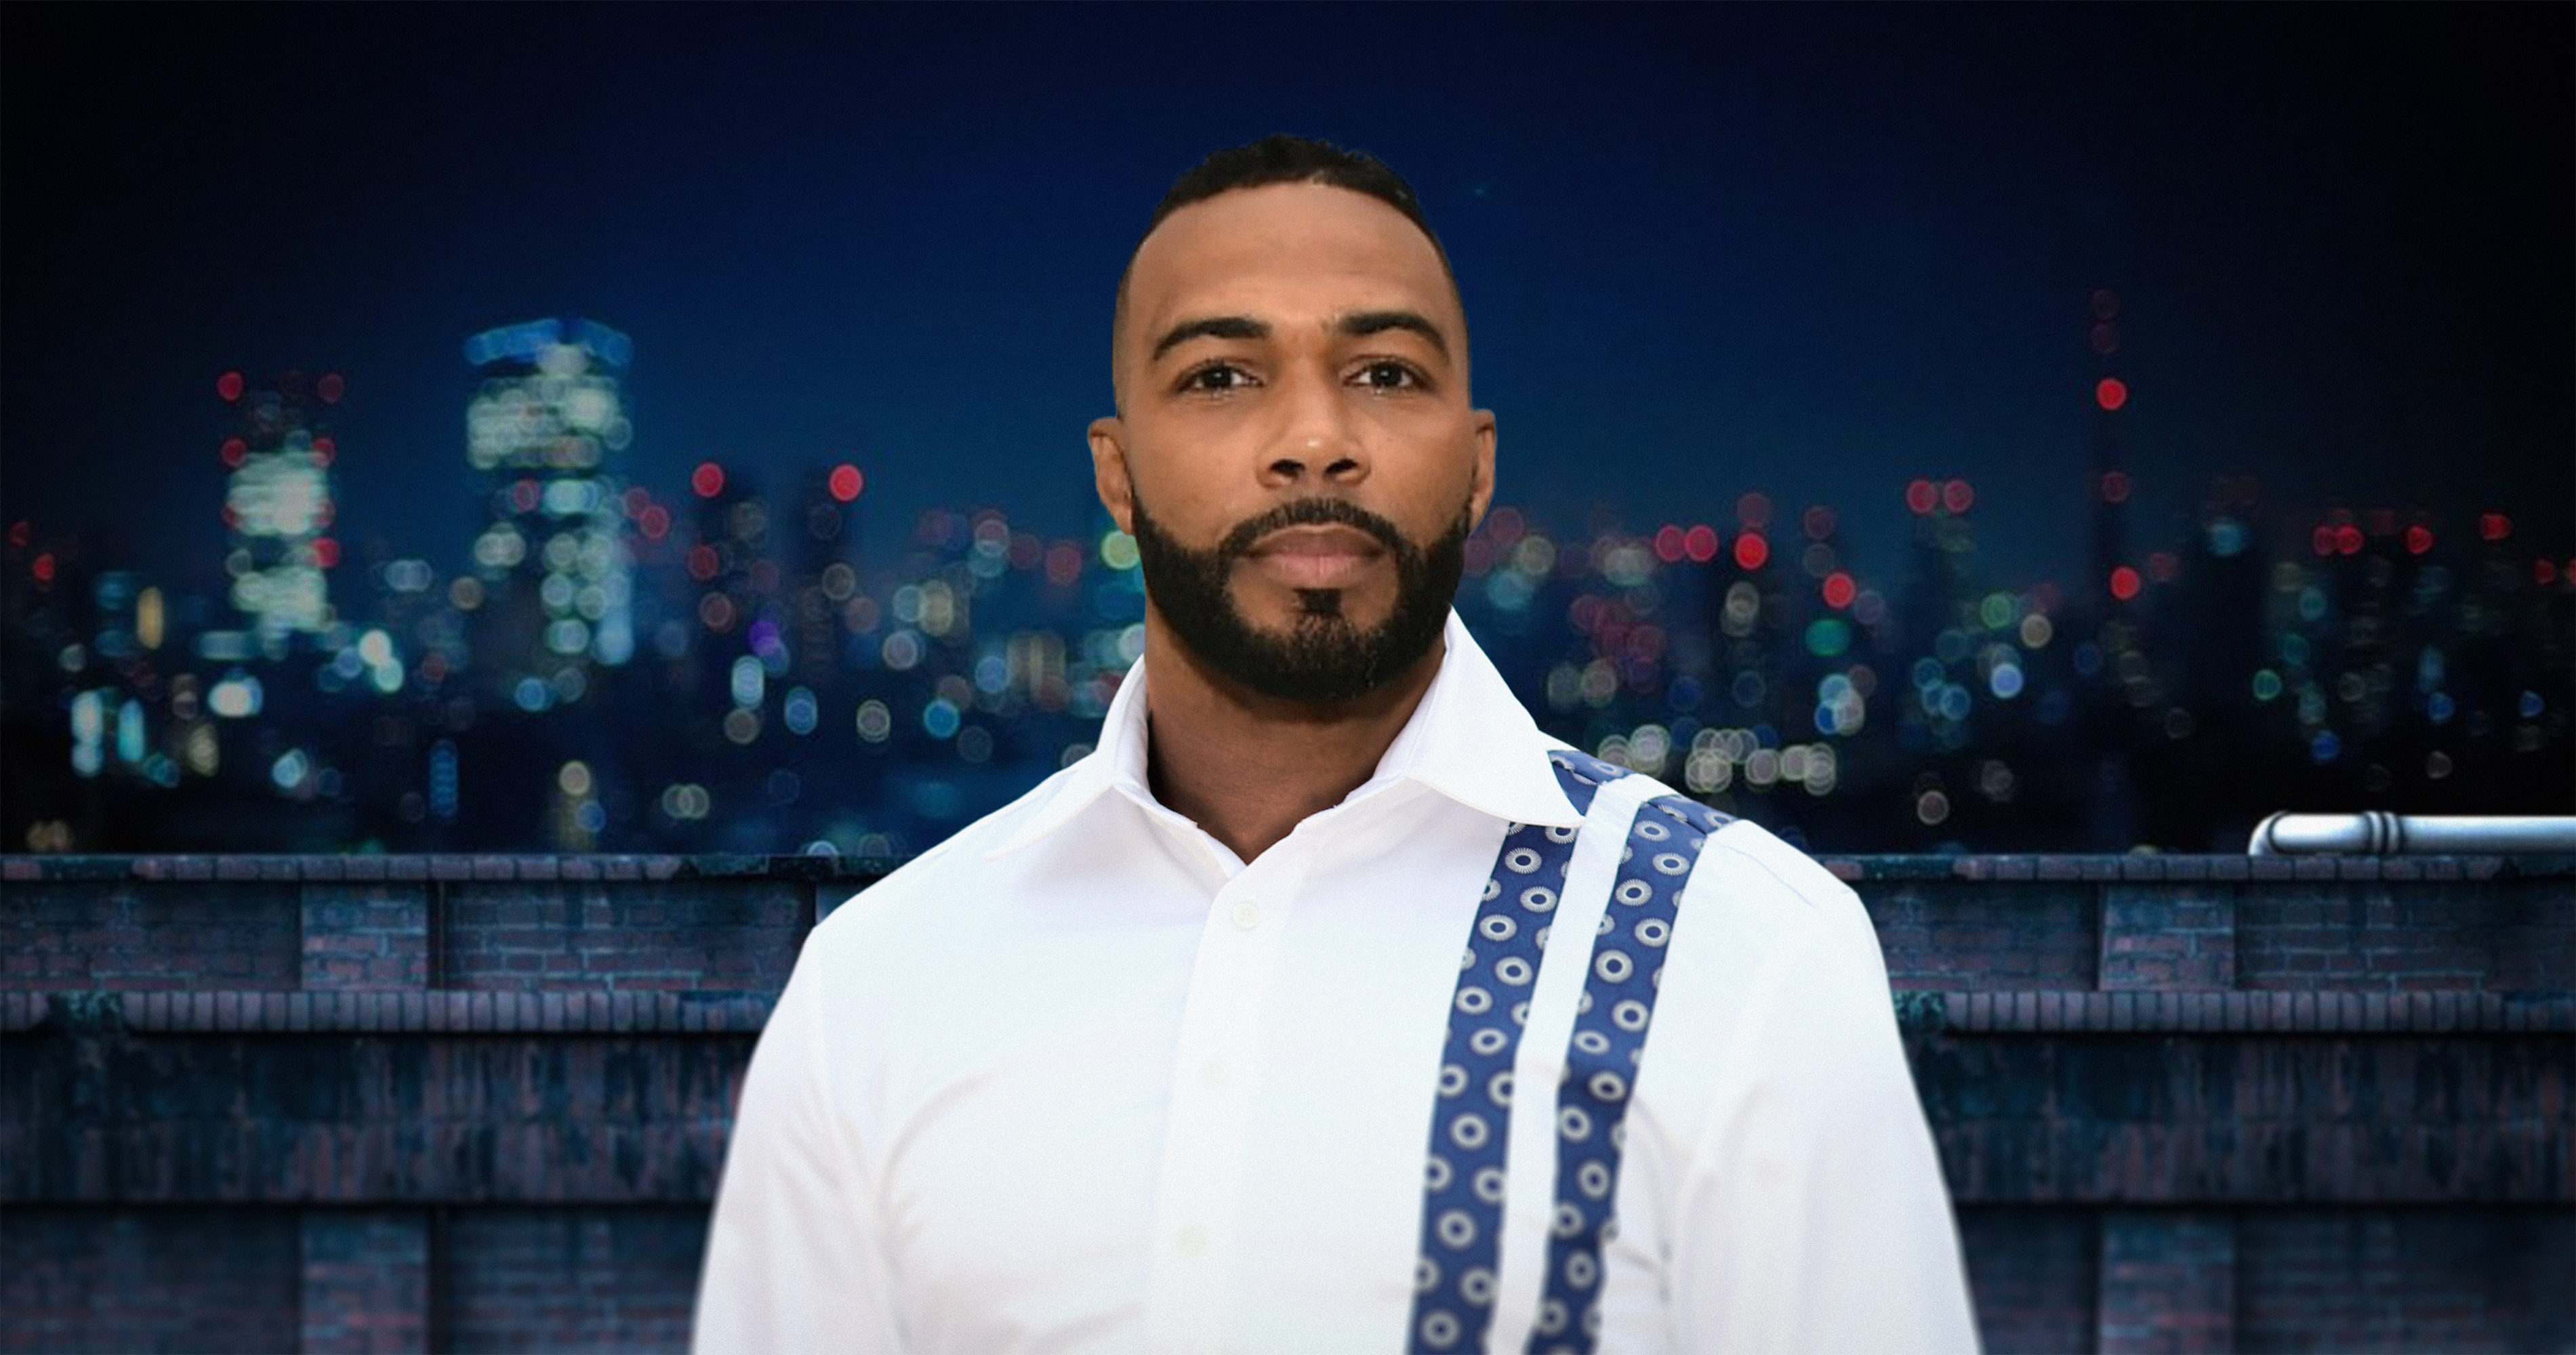 Omari Hardwick in African wear Shwe by G